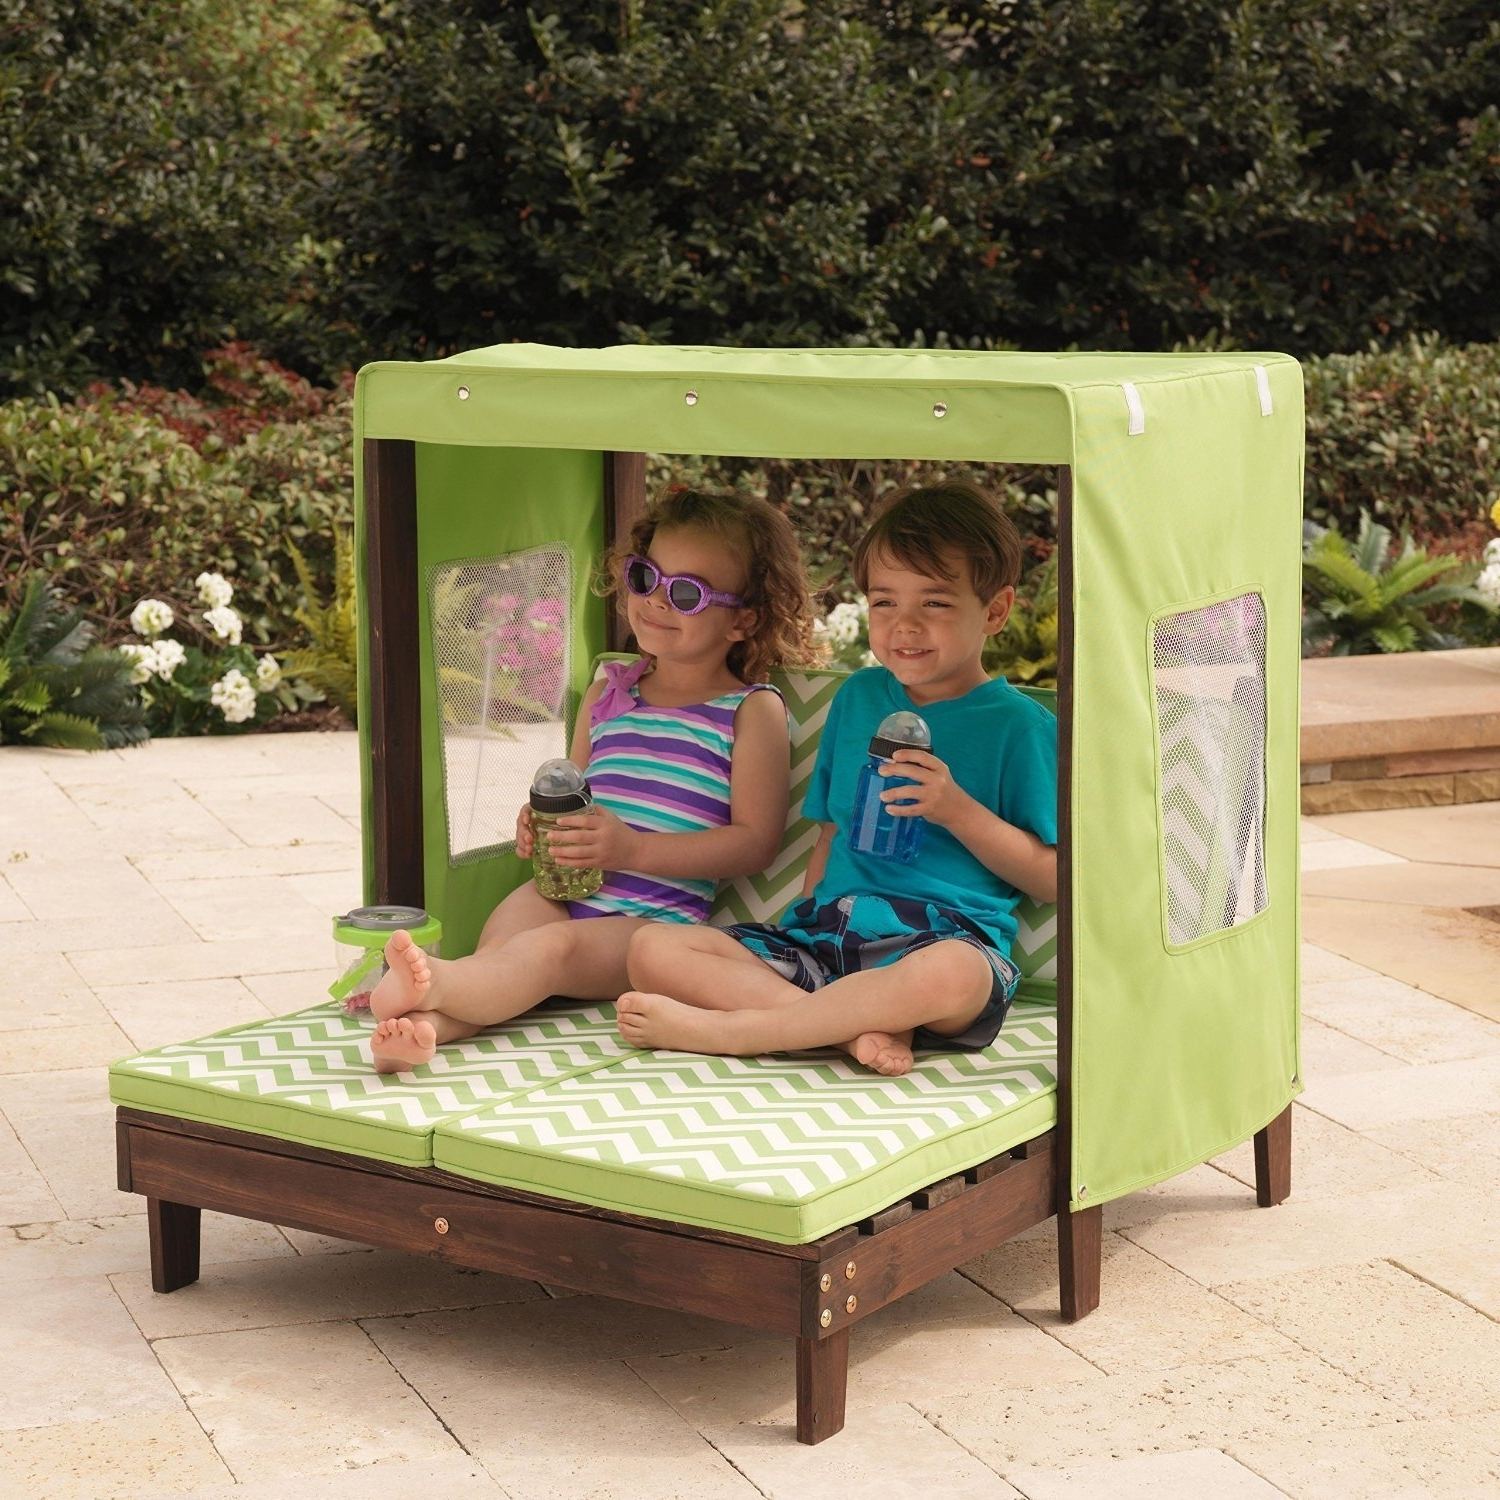 Kidkraft Double Chaise Lounges Regarding Well Known Amazon: Kidkraft Outdoor Double Chaise Lounge Chair With (View 3 of 15)